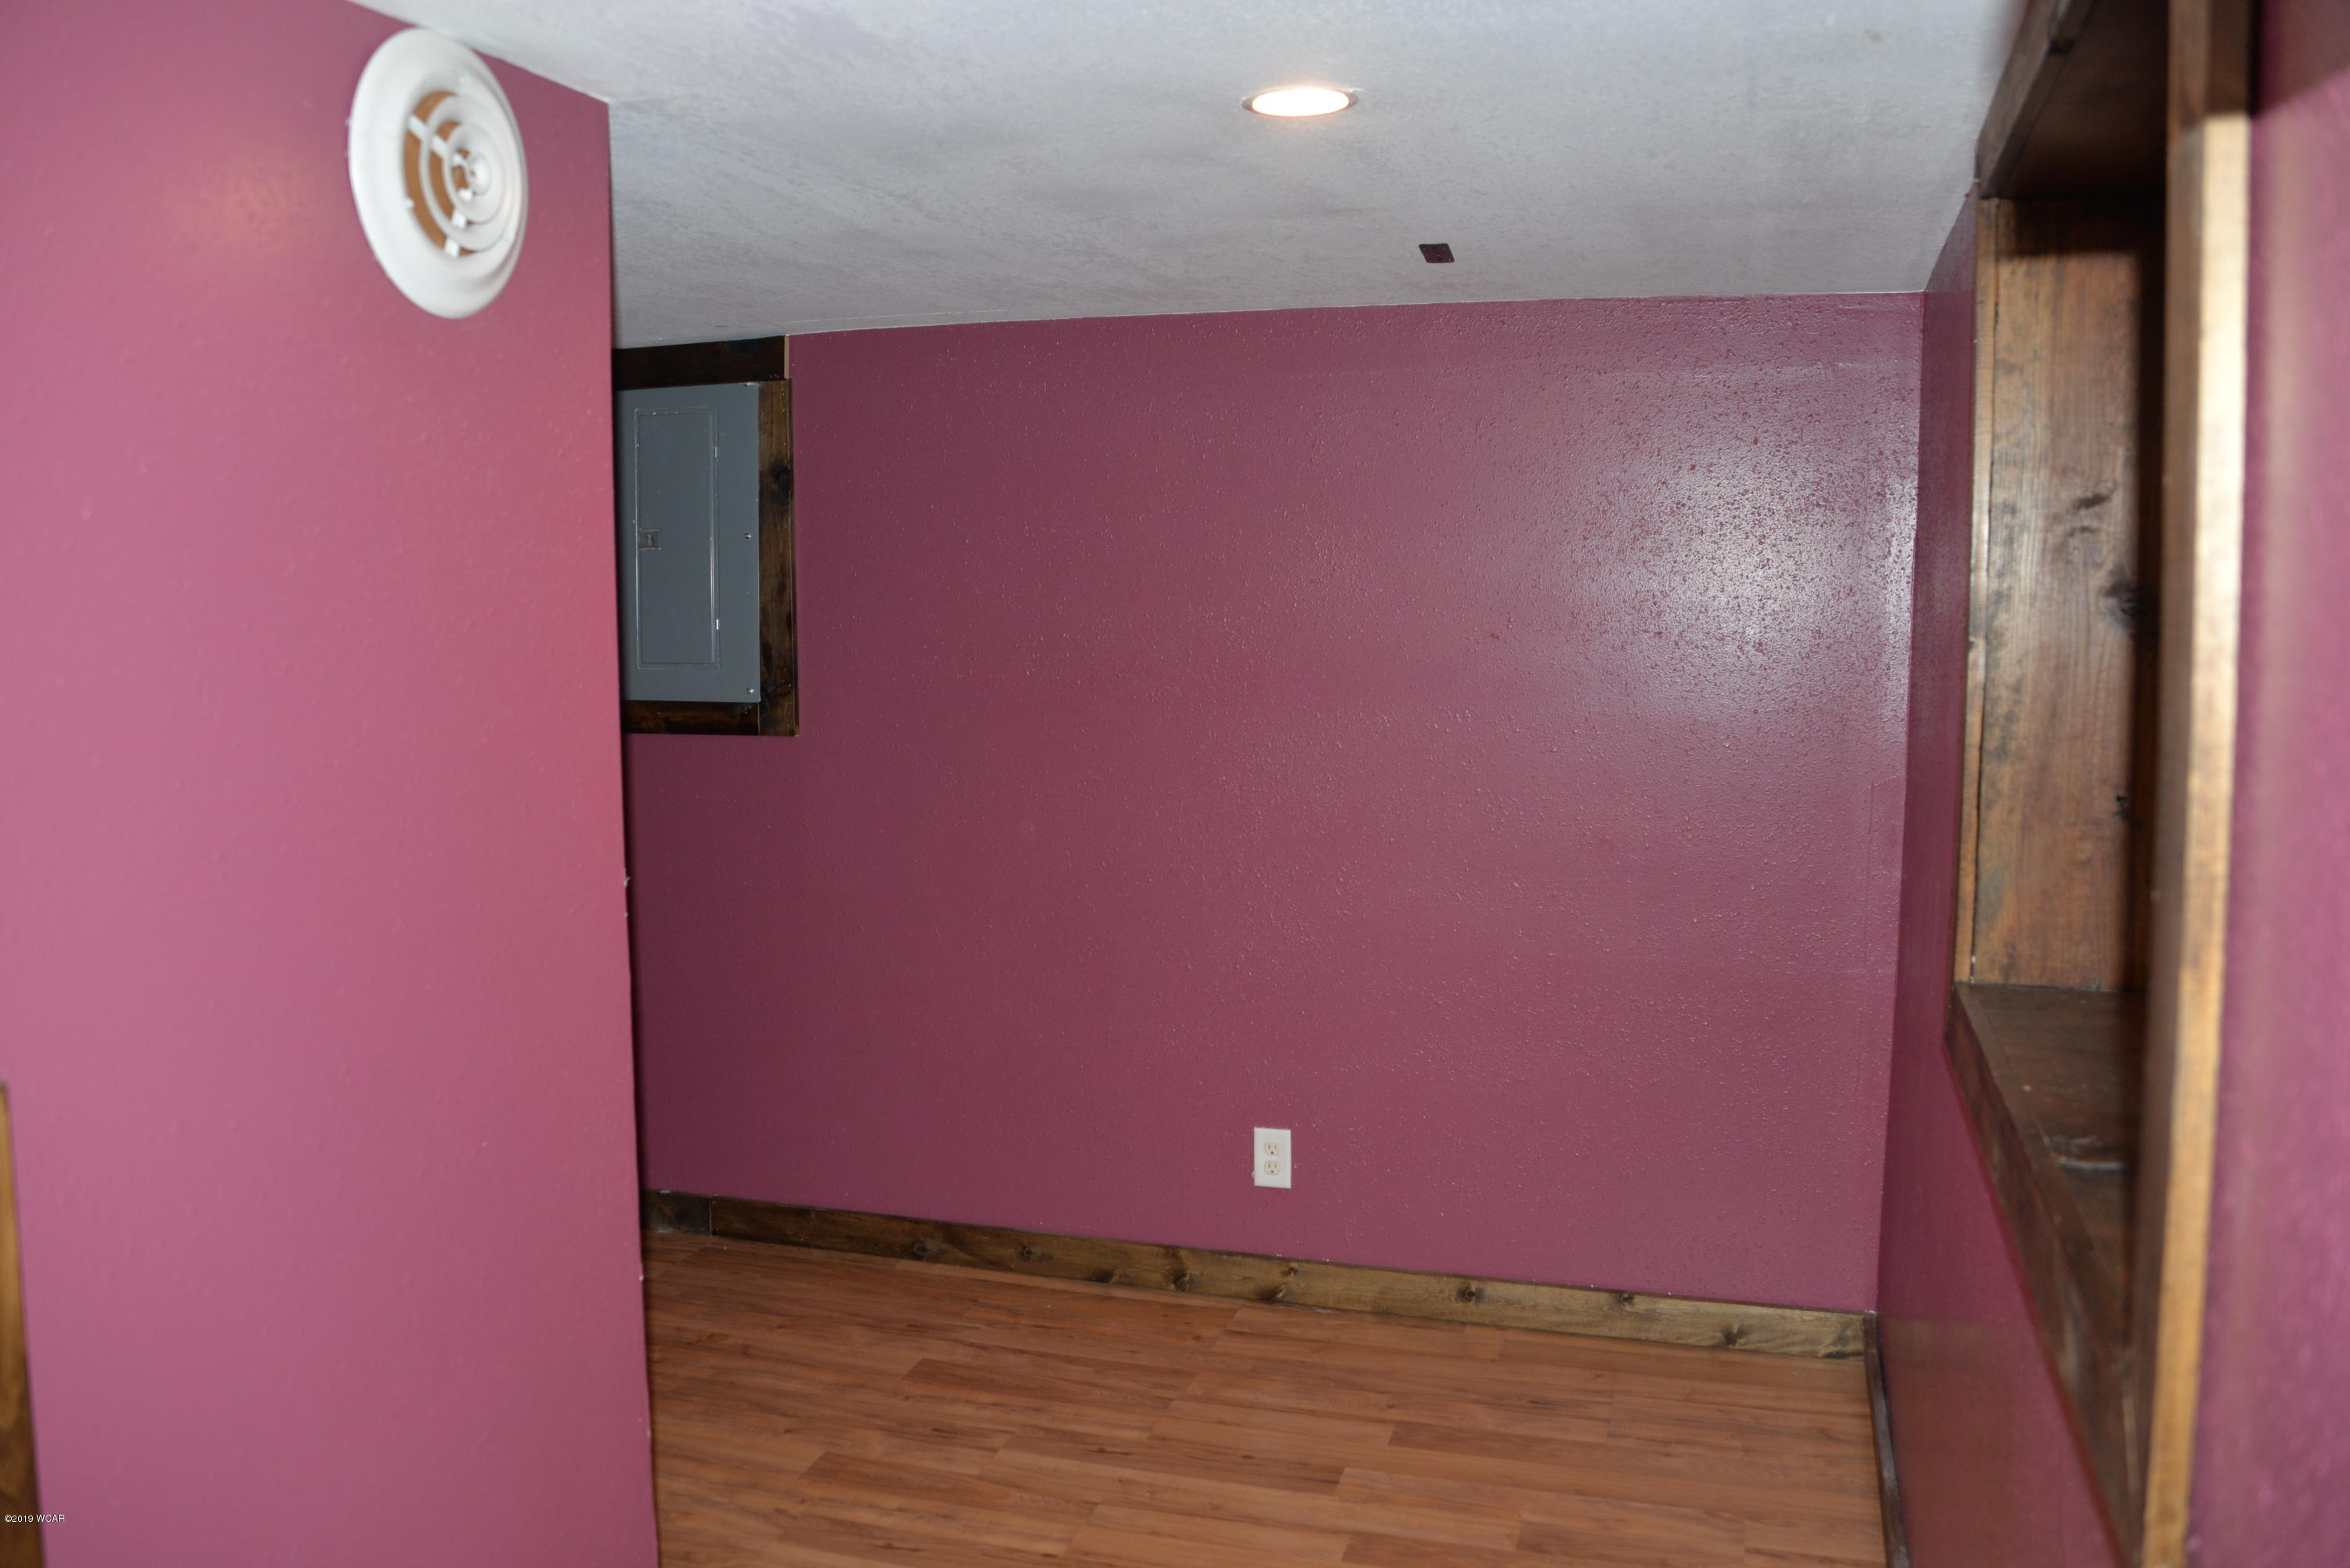 143 3rd Avenue,Spicer,3 Bedrooms Bedrooms,1 BathroomBathrooms,Single Family,3rd Avenue,6033289